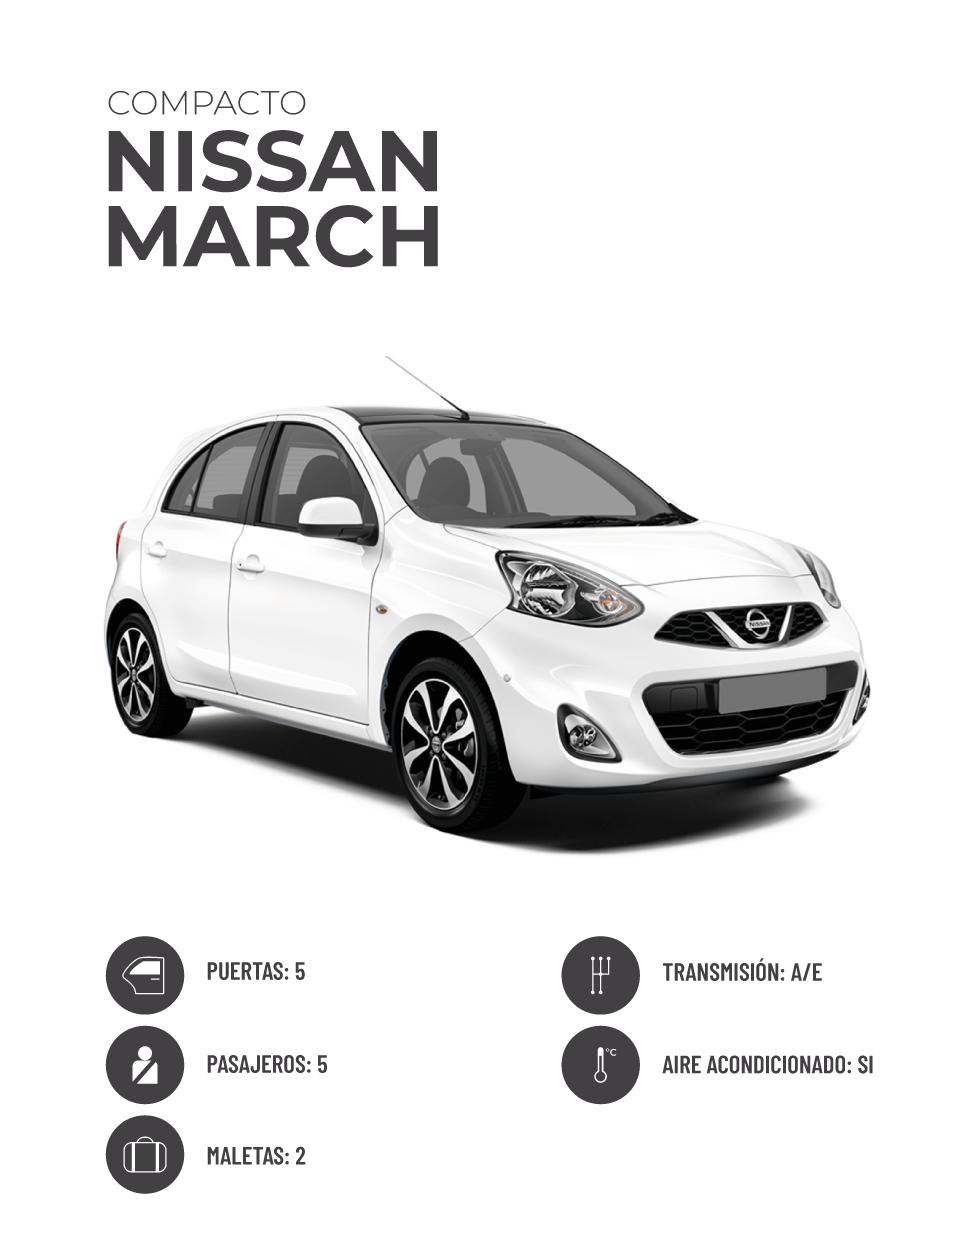 MARCH-mobile-001